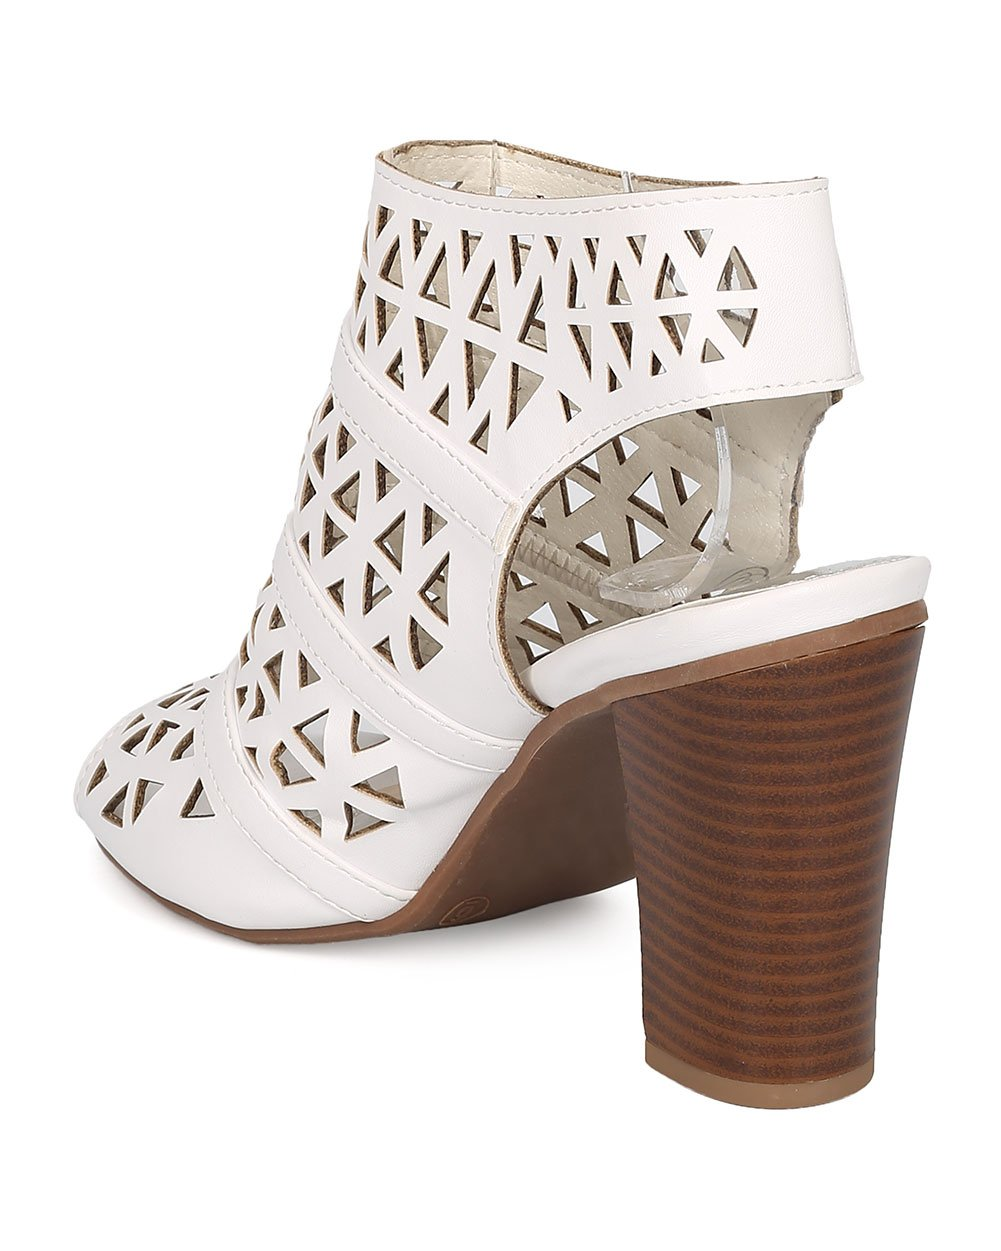 Women Leatherette Peep Toe Perforated Chunky Heel Slingback Mule GG78 - White (Size: 6.5) by Nature Breeze (Image #3)